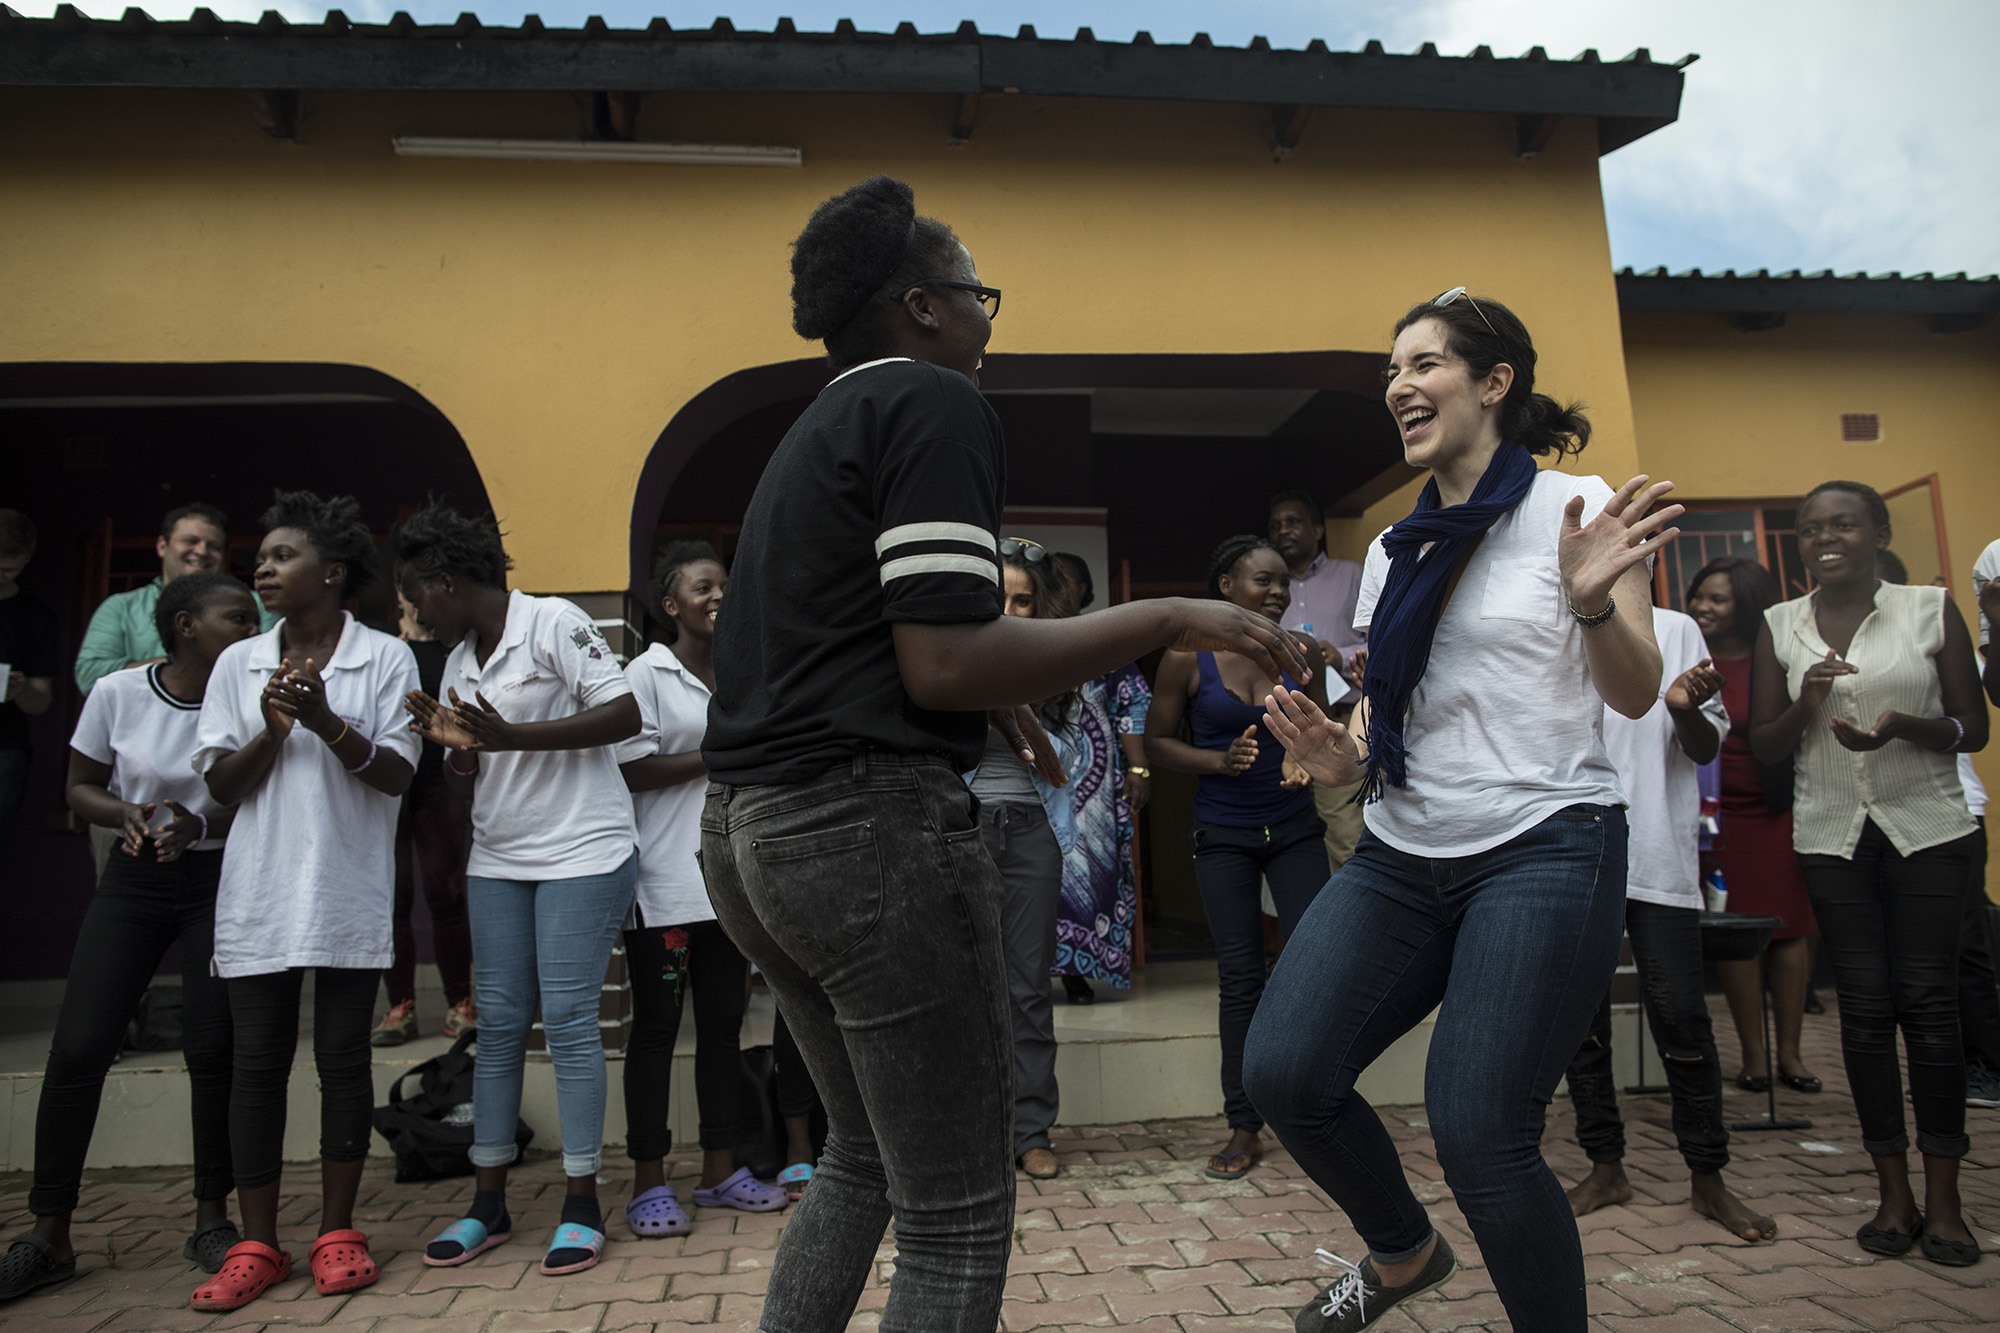 LUSAKA, ZAMBIA: Feb. 19, 2018 - The CARE Learning Tour to Zambia delegation visits a DREAMS Center in Lusaka, Zambia on Feb. 19, 2018 to learn more about how the center's services play an important role in the community for adolescent girls and young women. Here, Liz Leibowitz, top center, Foreign Affairs Legislative Assistant for Rep. Nita Lowey, dances with girls from the DREAMS program and other CARE Learning Tour to Zambia delegation members after touring the center's facility. Photo by Sarah Grile.